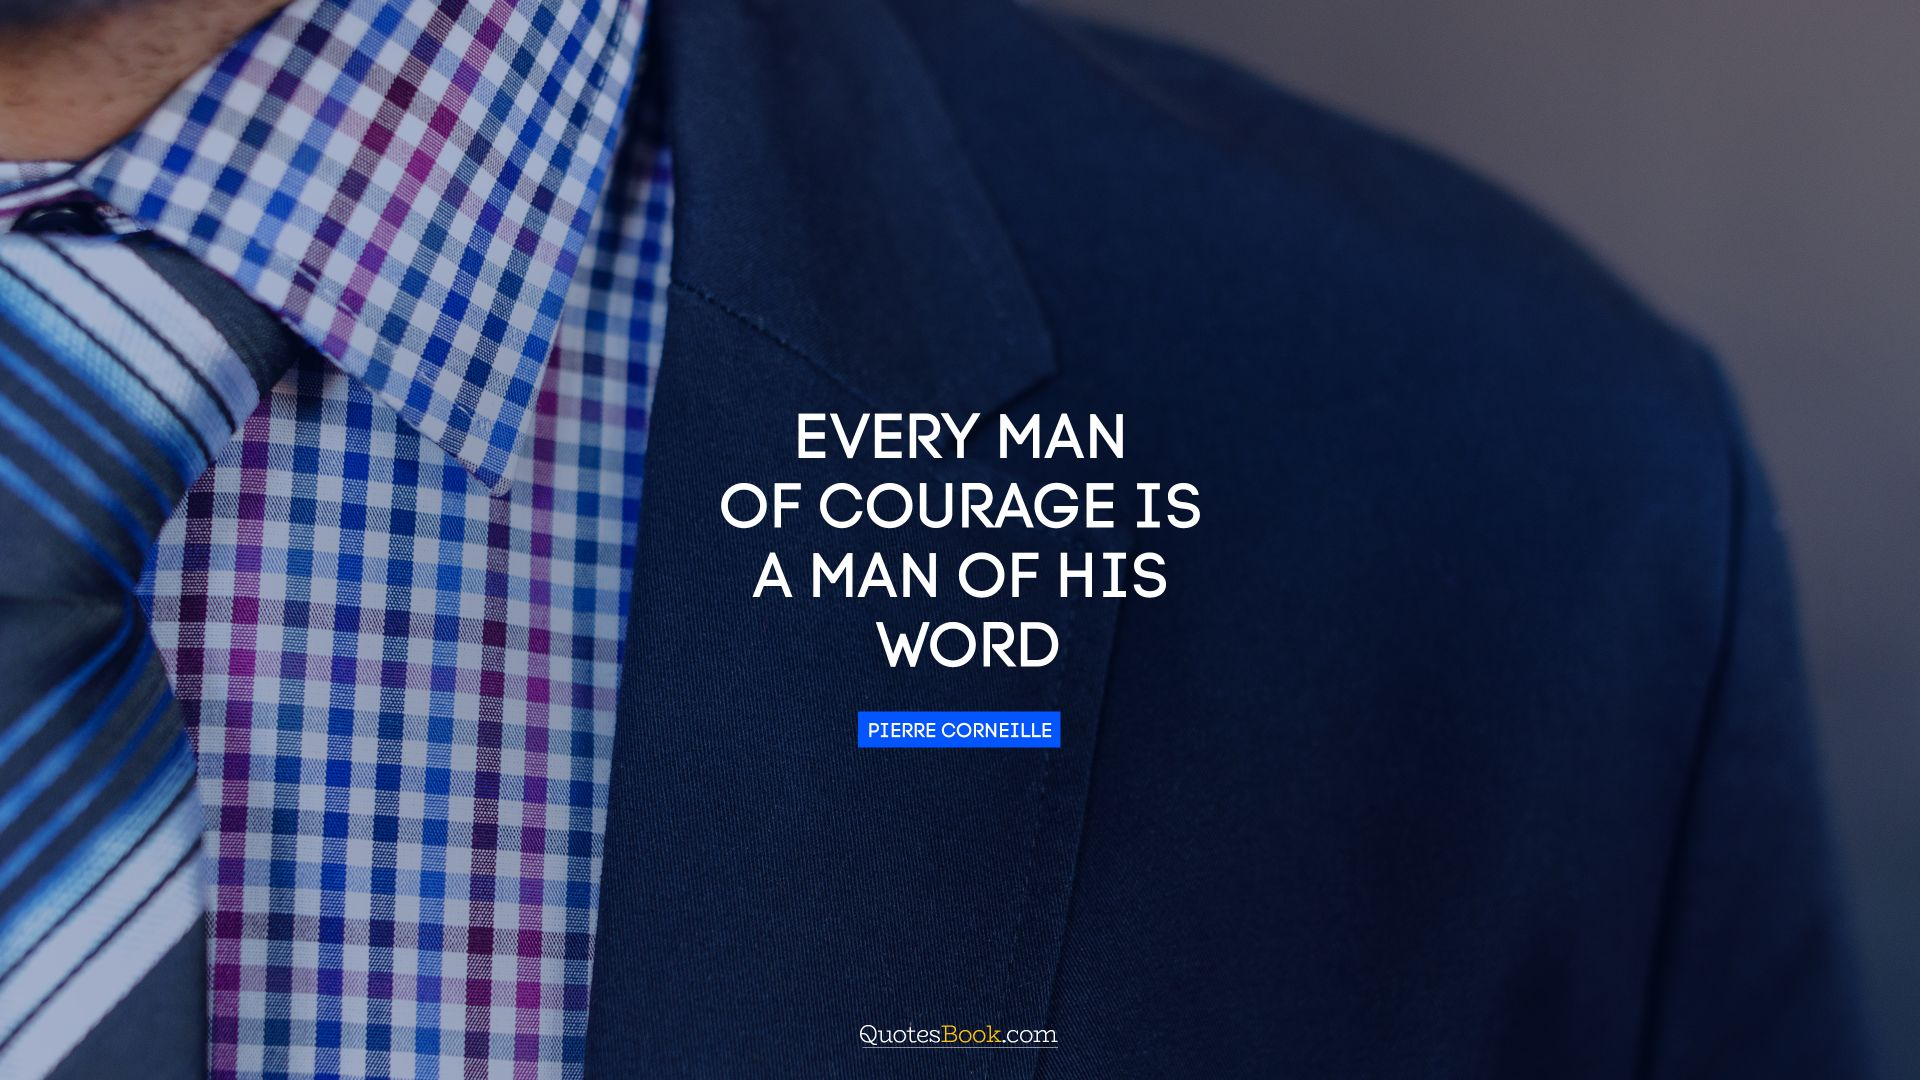 Every man of courage is a man of his word. - Quote by Pierre Corneille